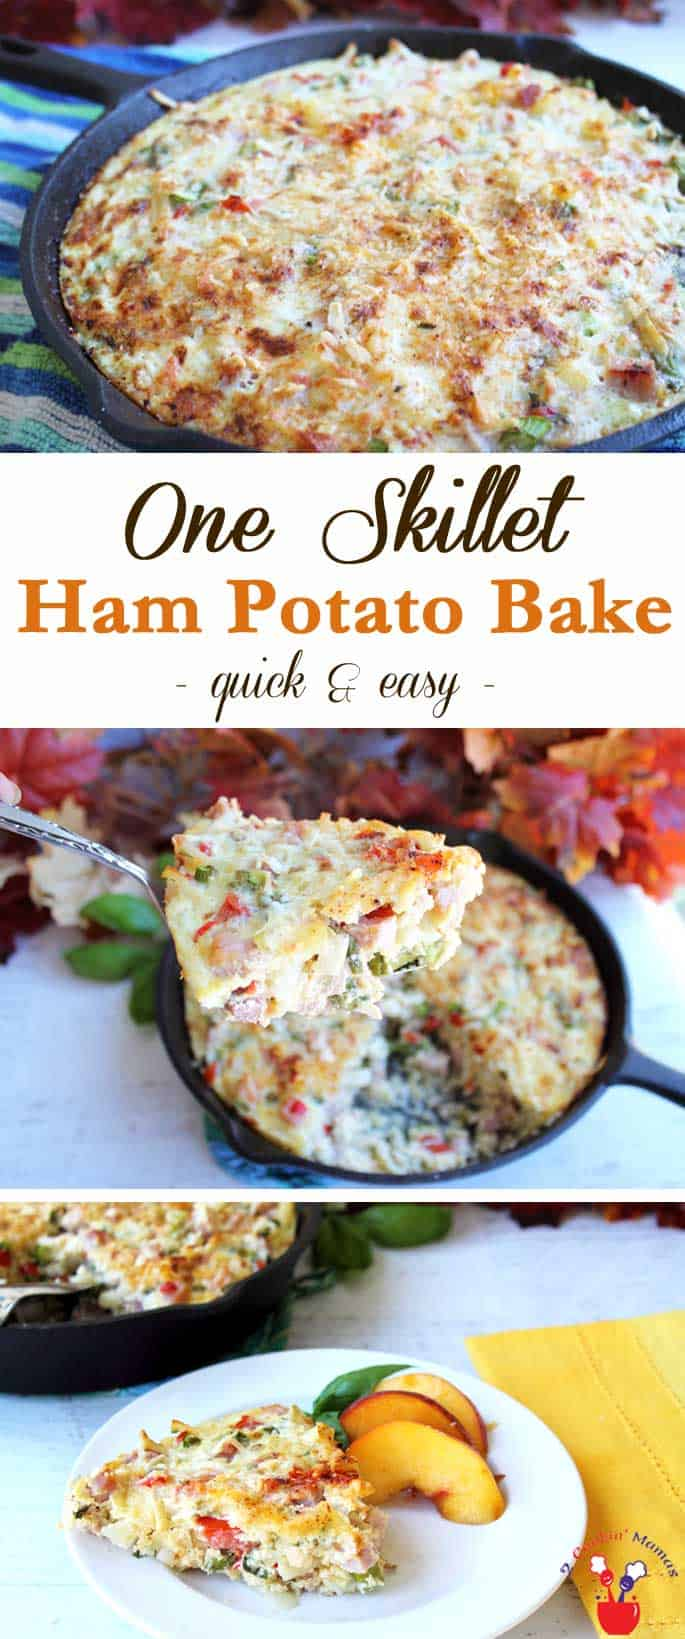 One Skillet Cheesy Ham Potato Bake | 2 Cookin Mamas Easy to make & easy to clean up, this one skillet cheesy ham potato bake is a complete hearty dinner, full of cheesy goodness, potatoes and ham. #recipe #dinner #quickandeasy